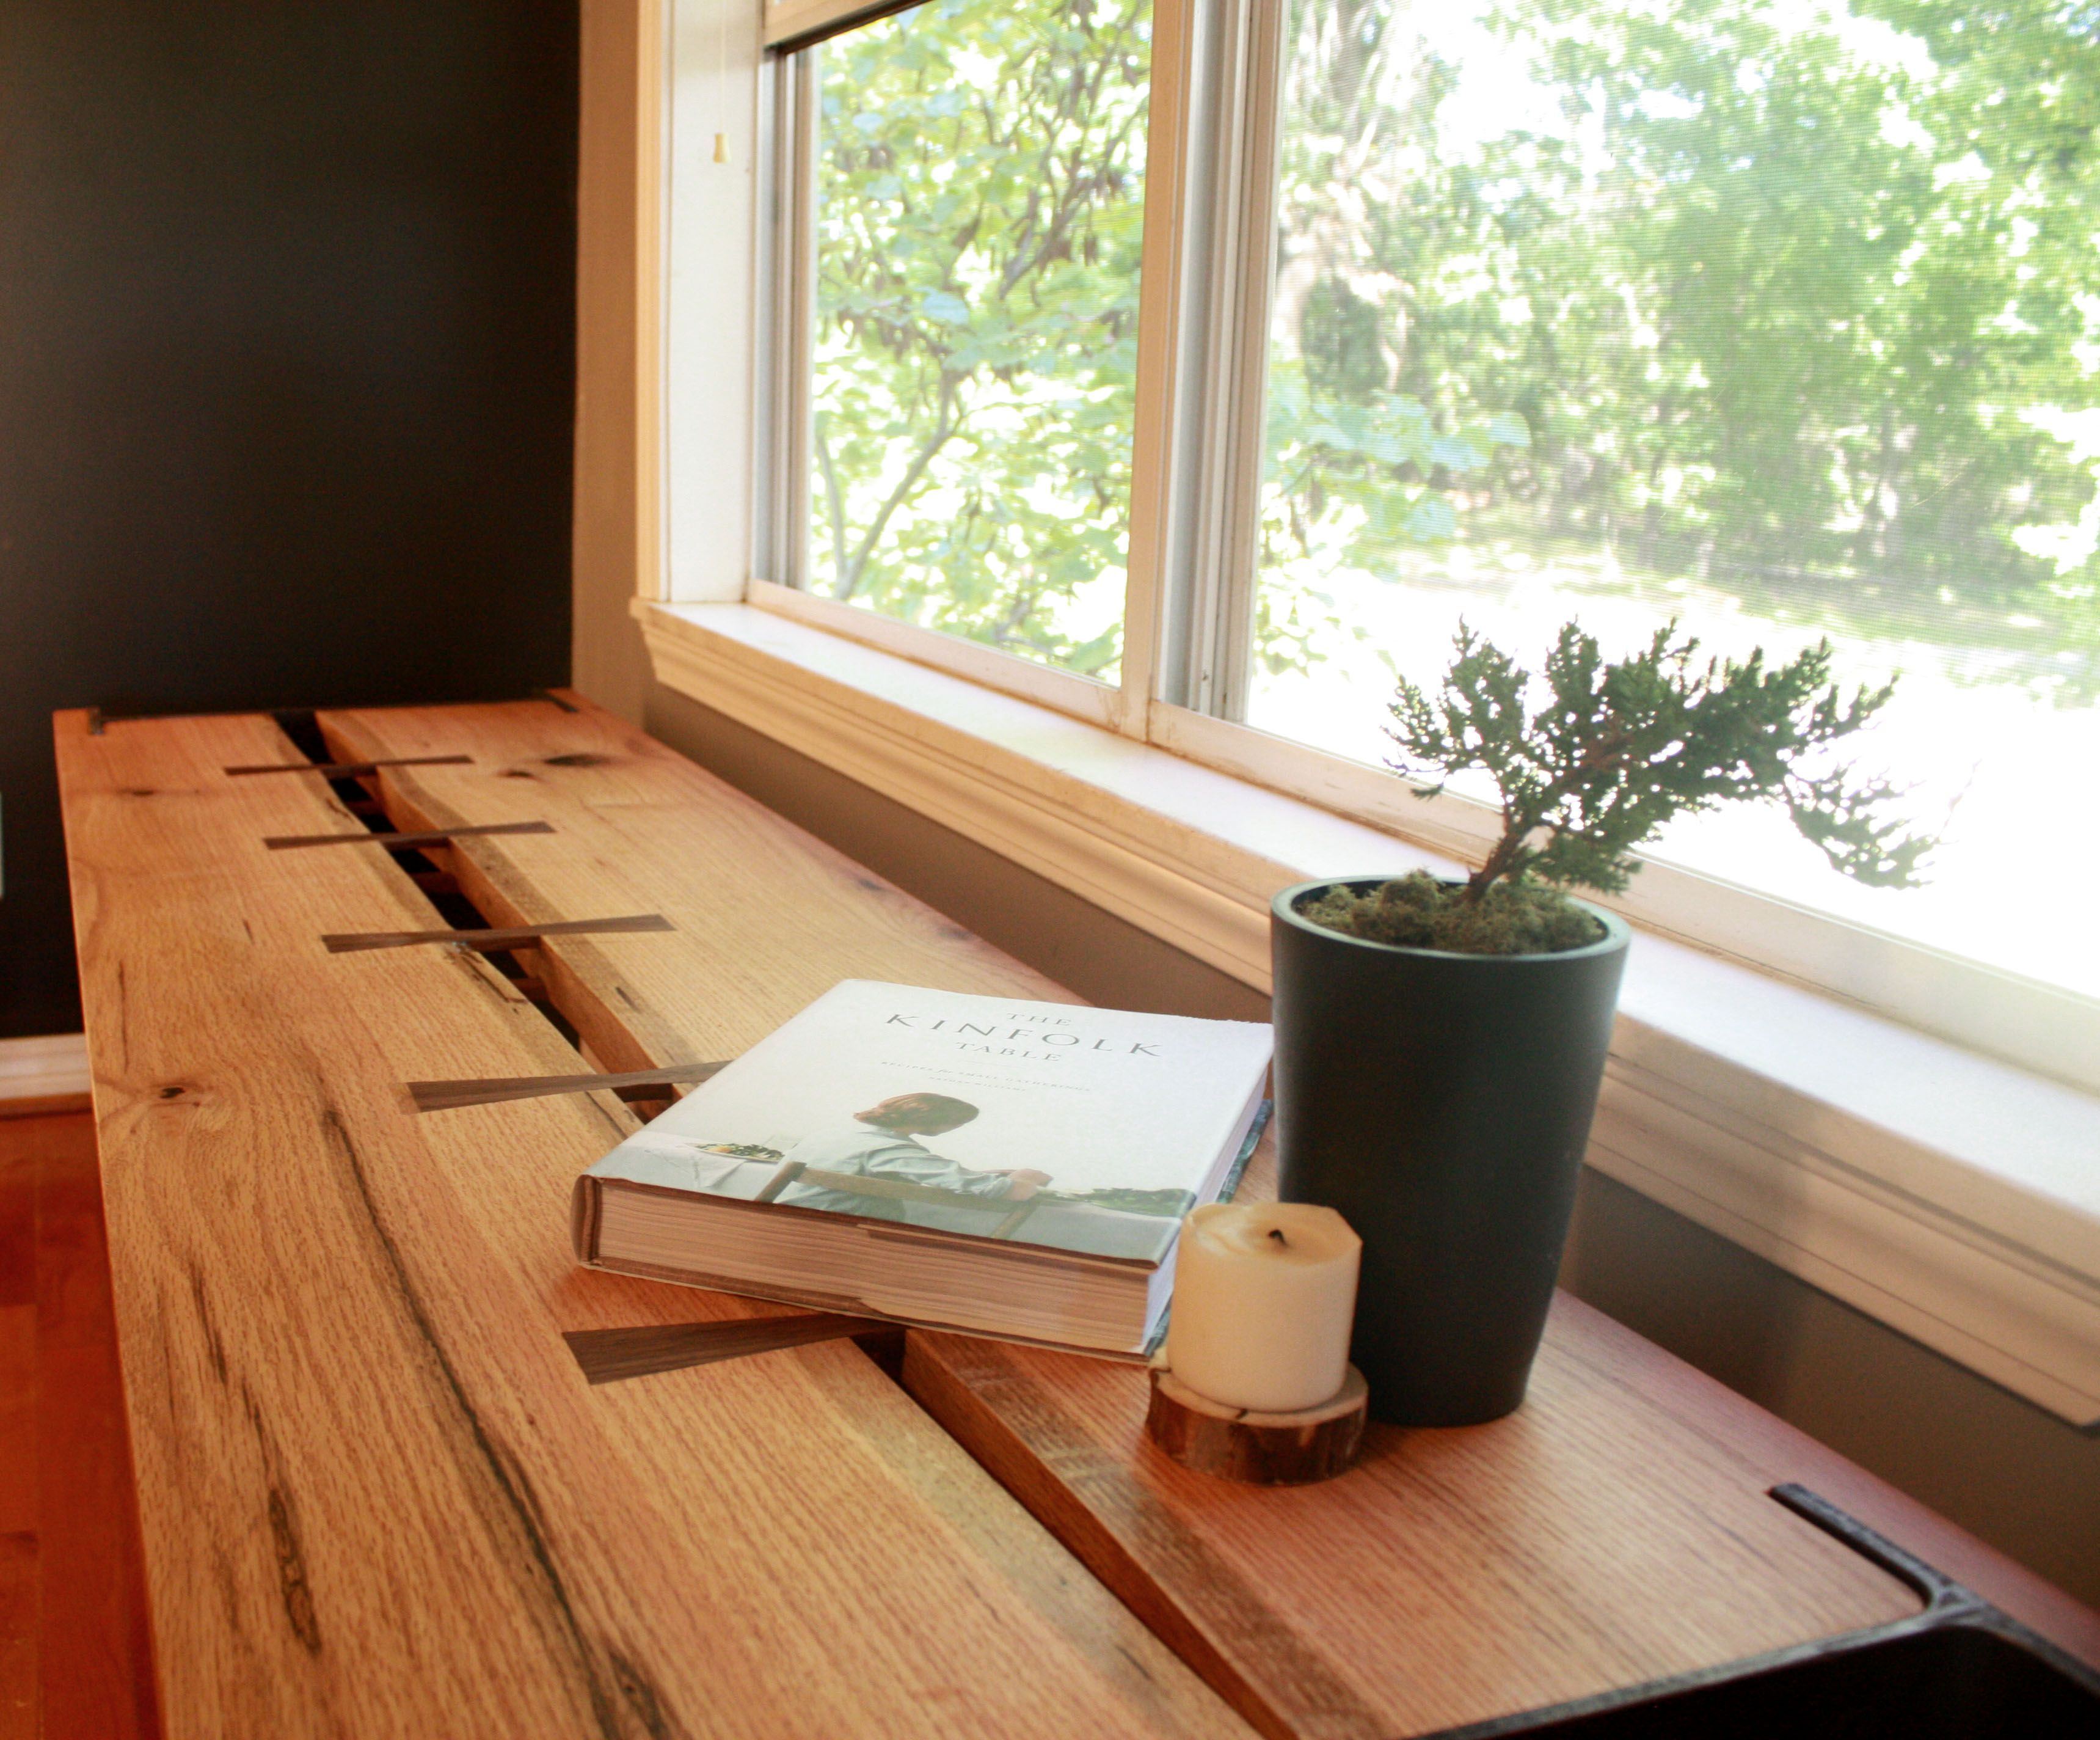 Hand Made Live Edge Oak Window Bench With Salvaged I Beam Legs By Red Leaf Woodcraft Design